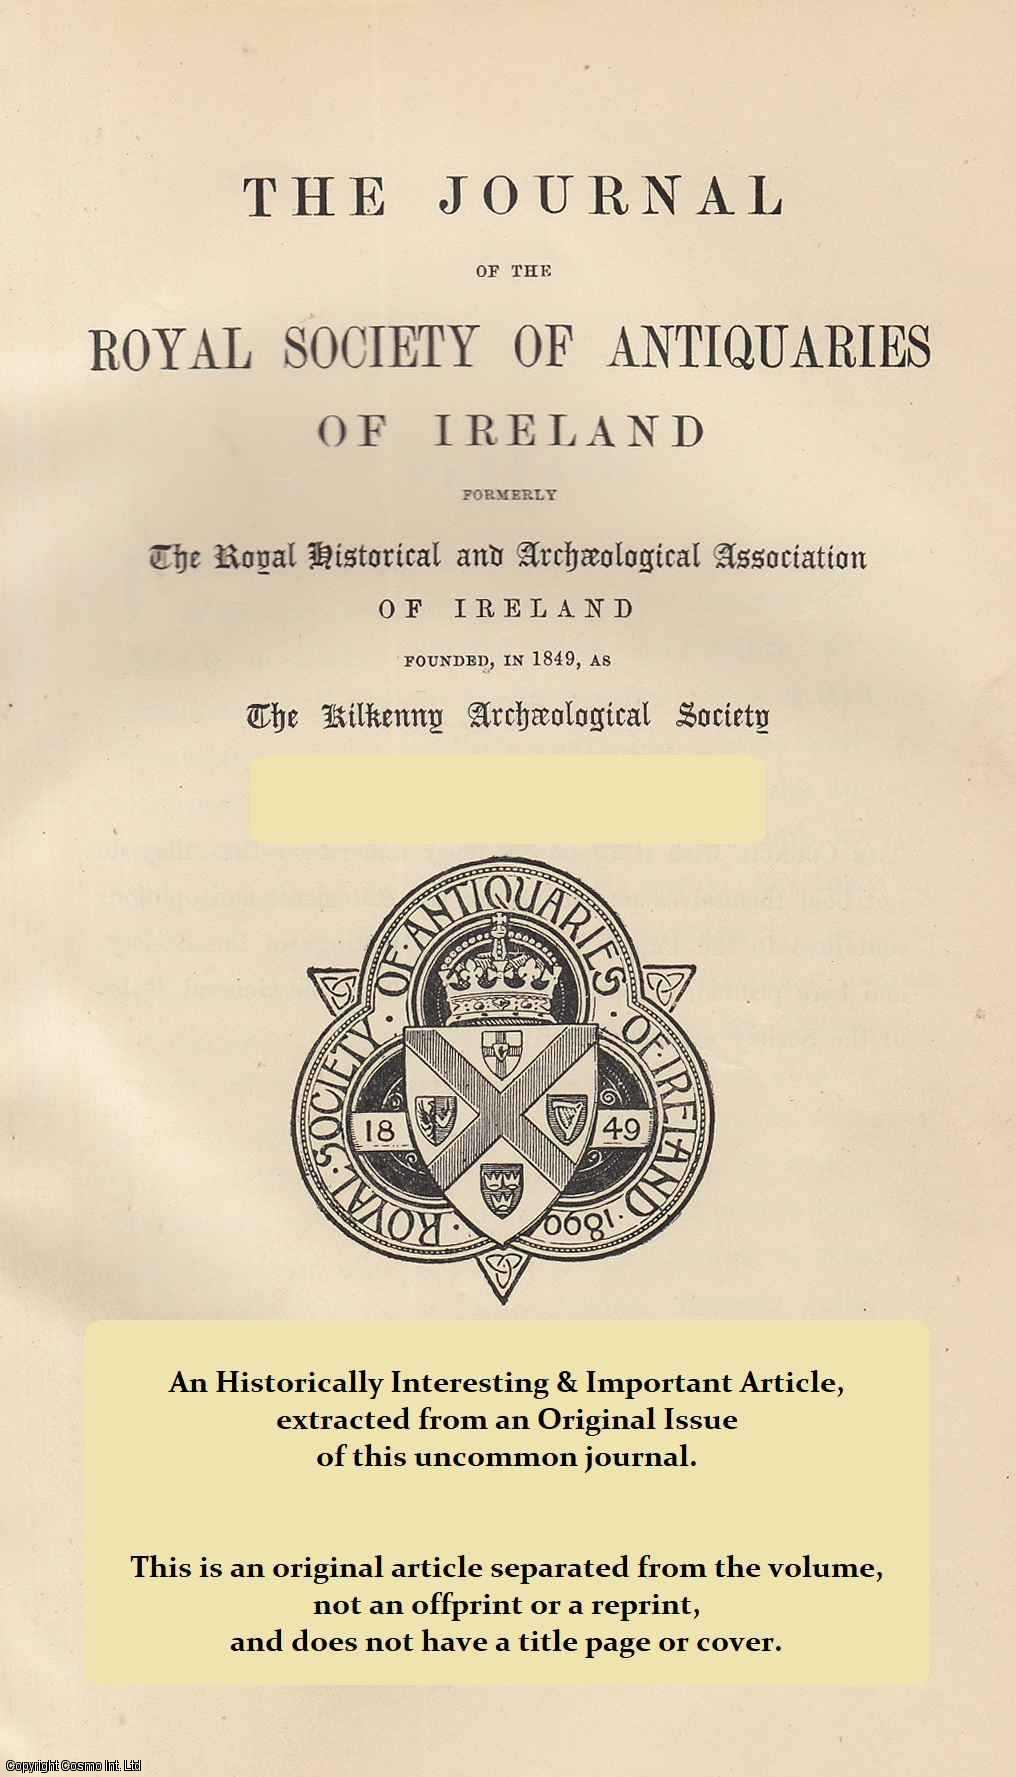 FLEMING, J.S. - Annaghs Castle. A rare original article from The Journal of the Royal Society of Antiquaries of Ireland, 1910.